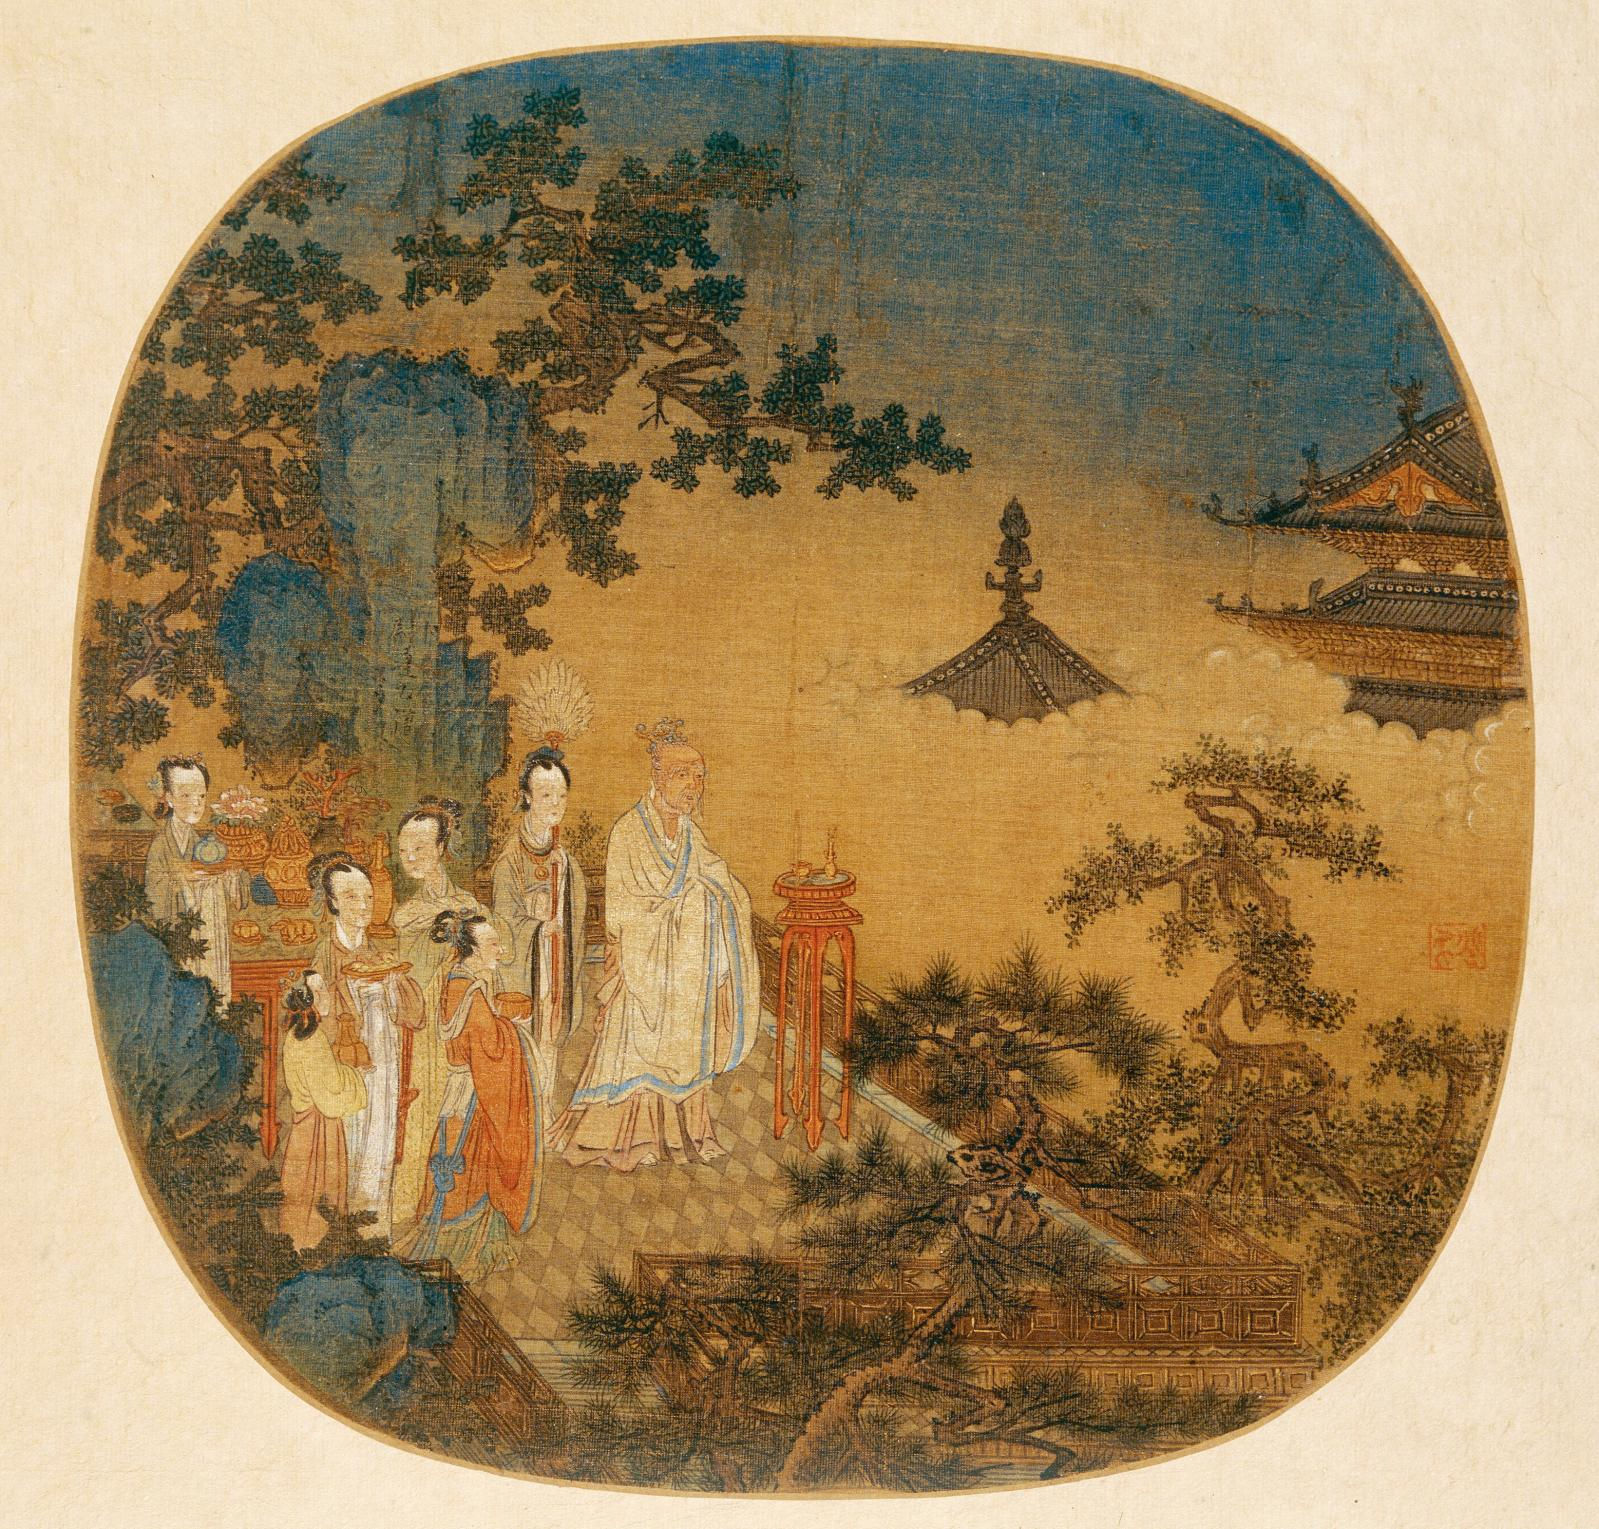 Yuan dynasty (13th-14th centuries), painting of burning incense, anonymous, circular fan in silk, 24 x 43 cm, Shanghai Museum.